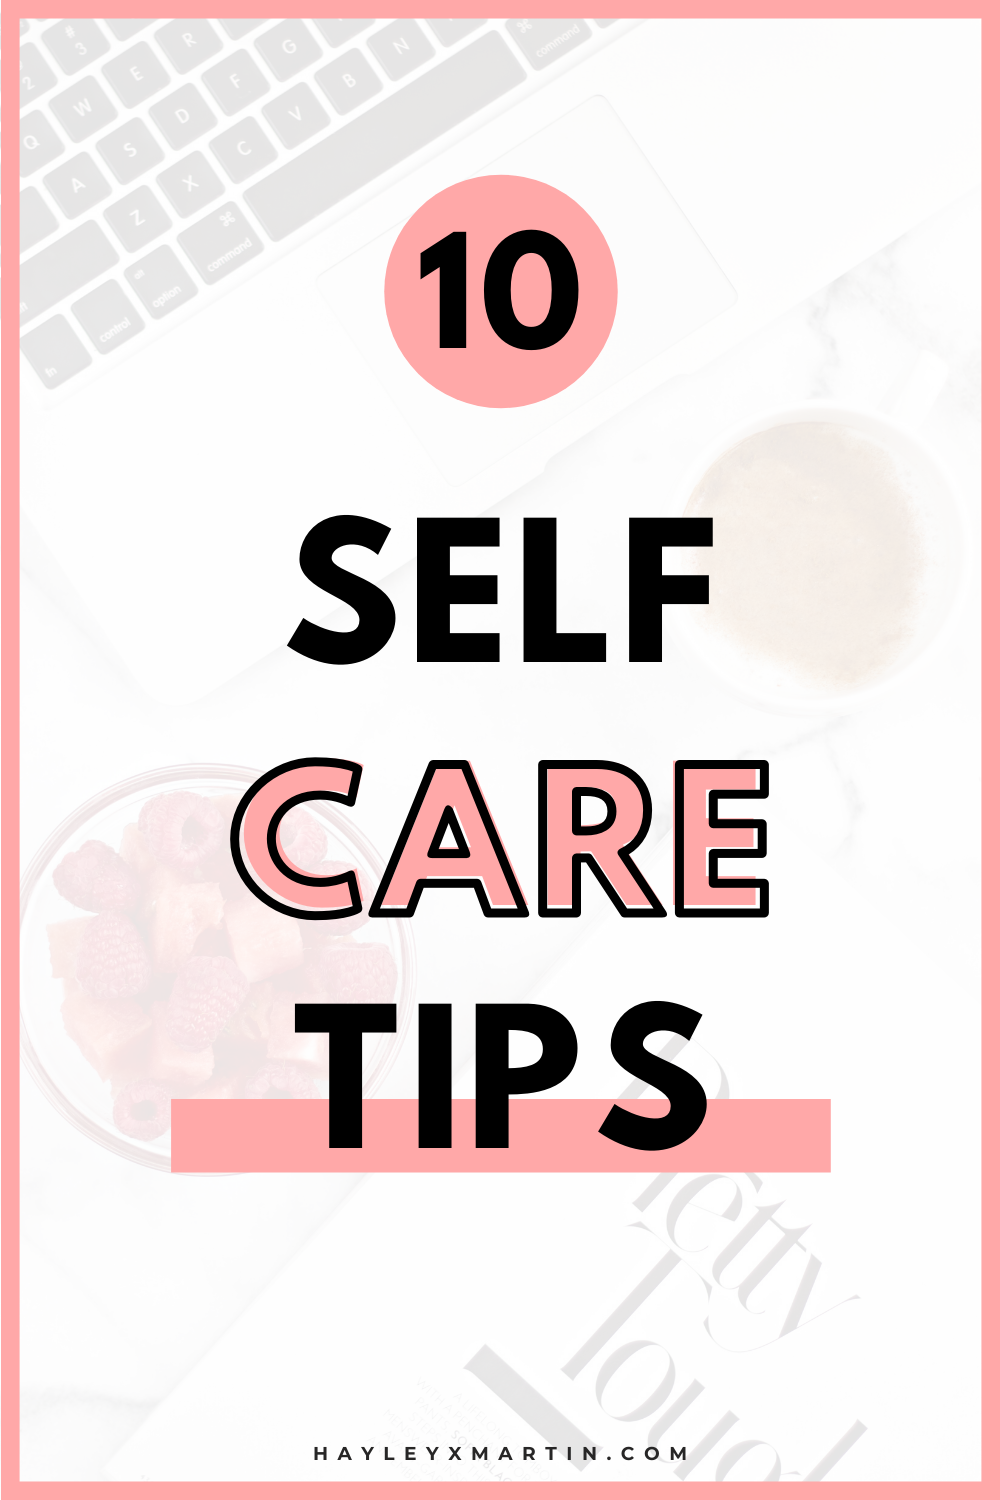 10 SELF CARE TIPS | SELF CARE DURING A PANDEMIC, CRISIS, SELF-ISOLATION, LOCKDOWN | HAYLEYXMARTIN